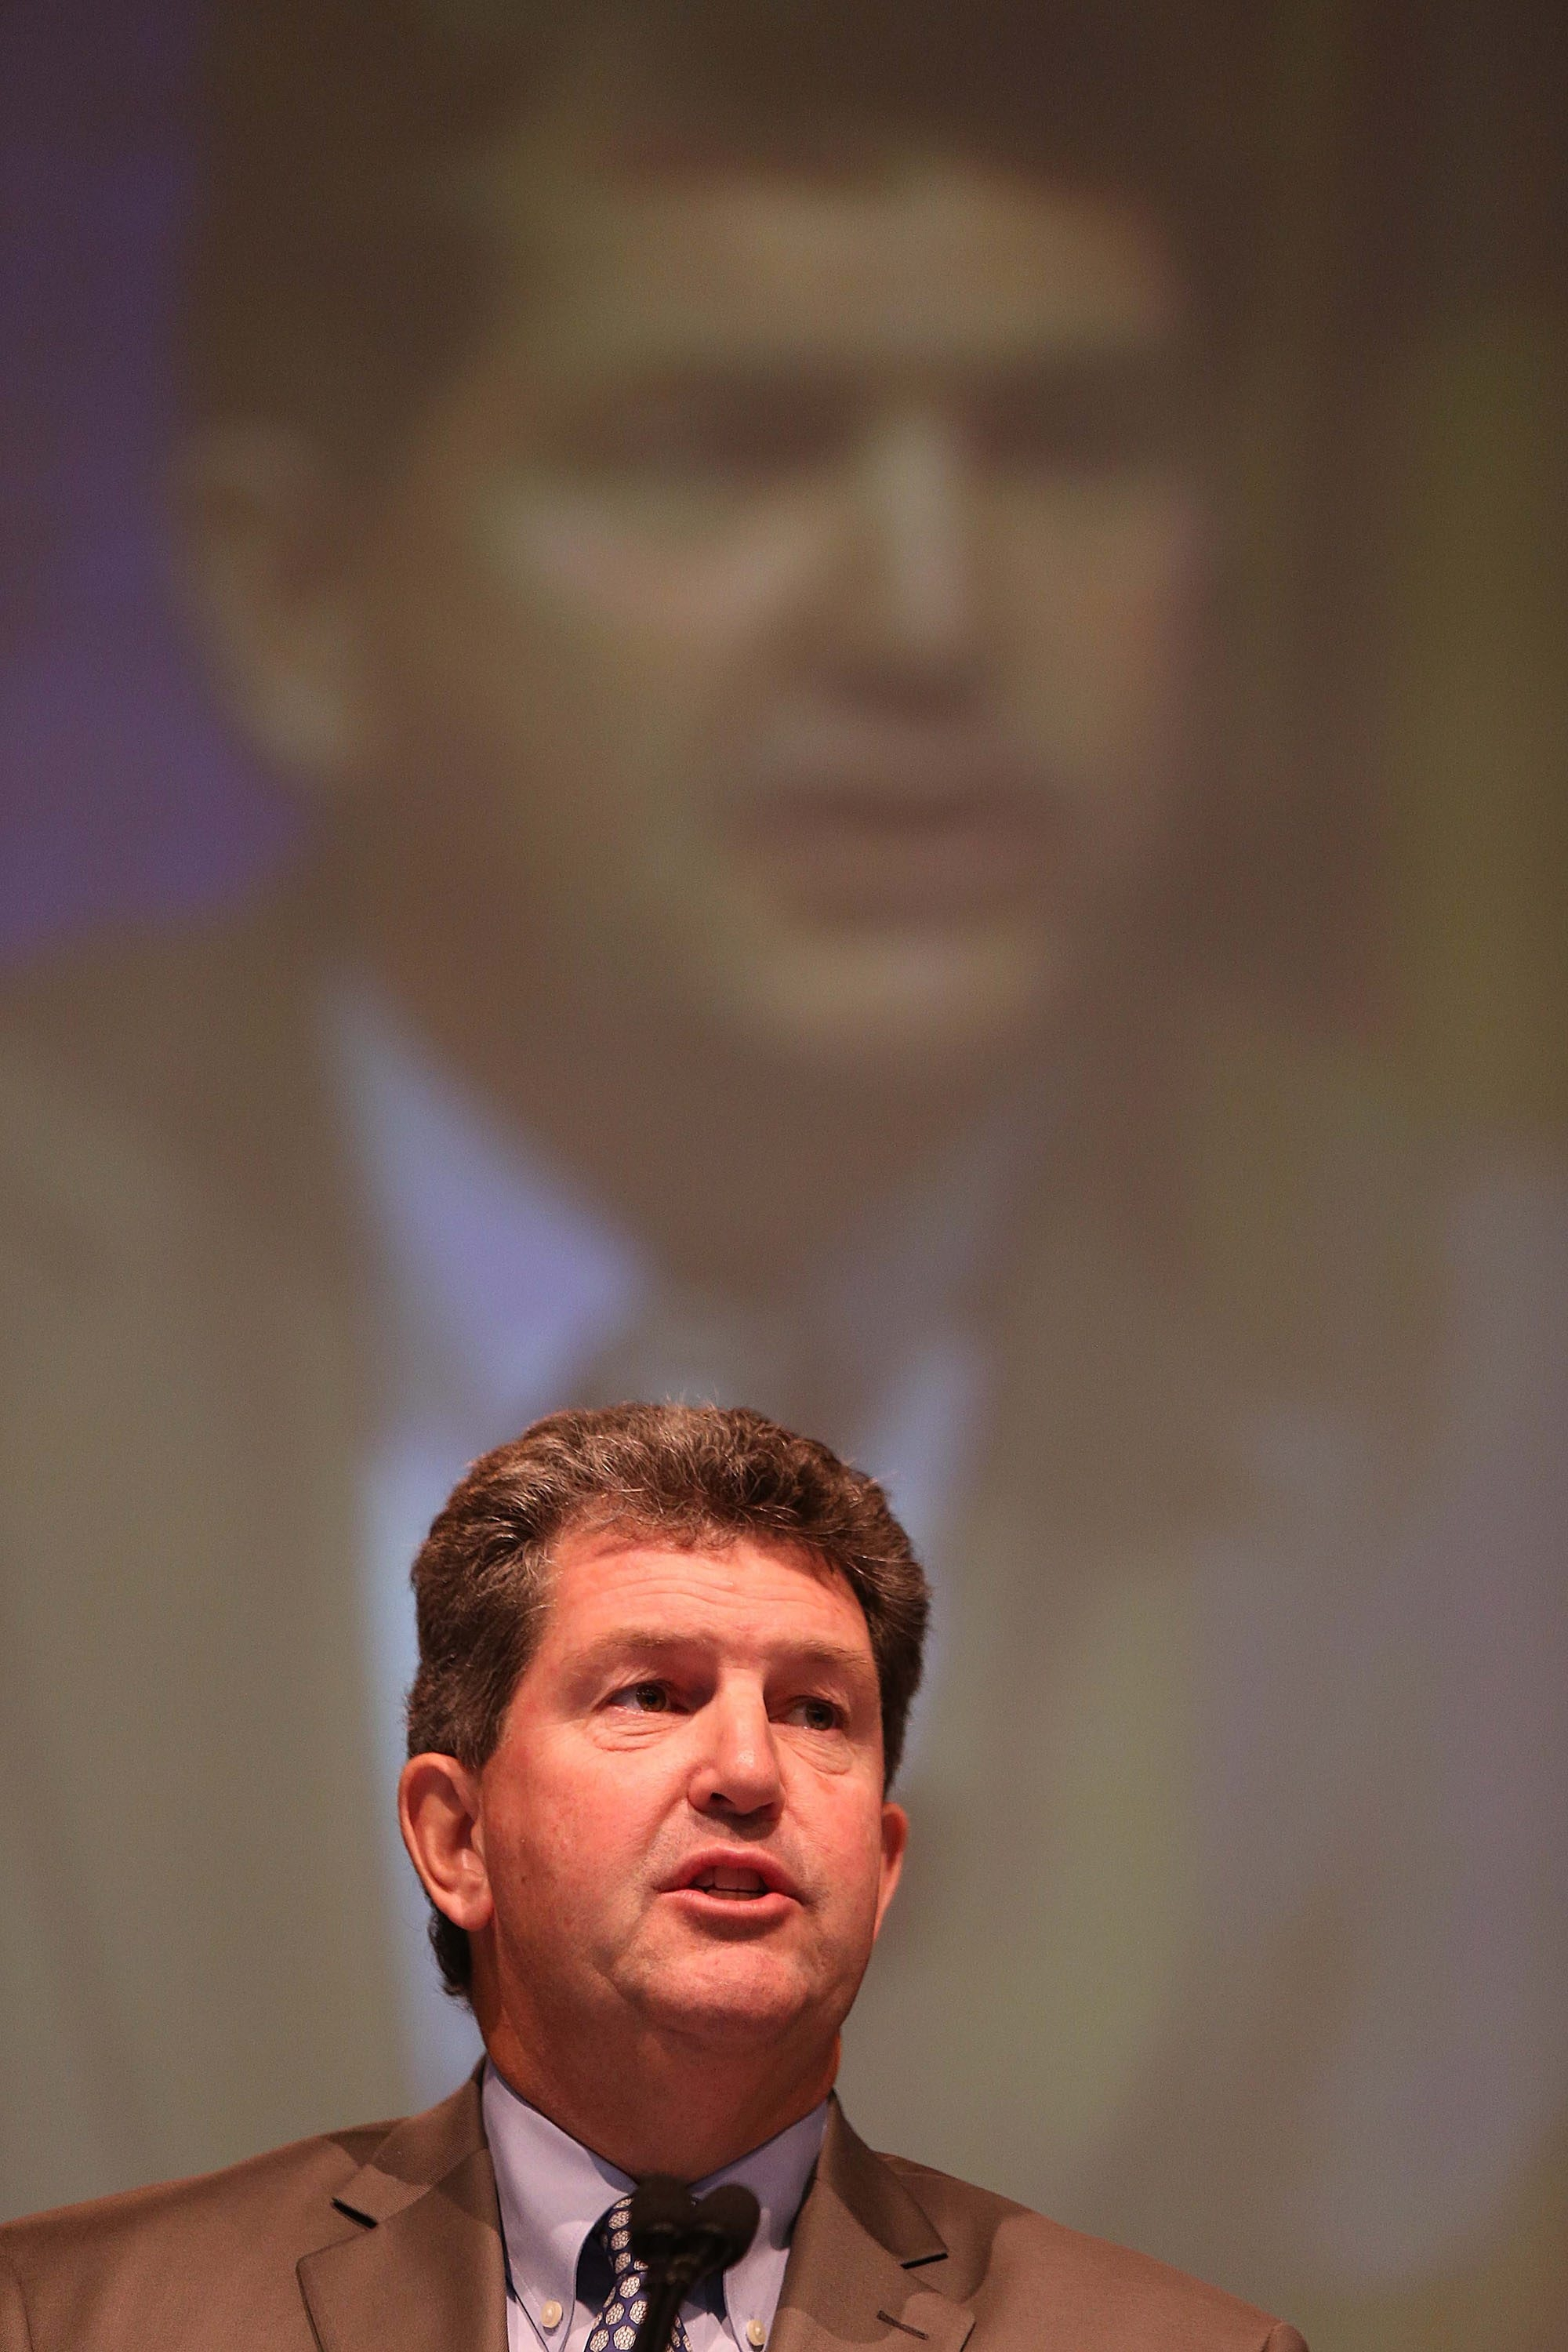 Postmaster General Patrick Donahoe  dodged initial question.